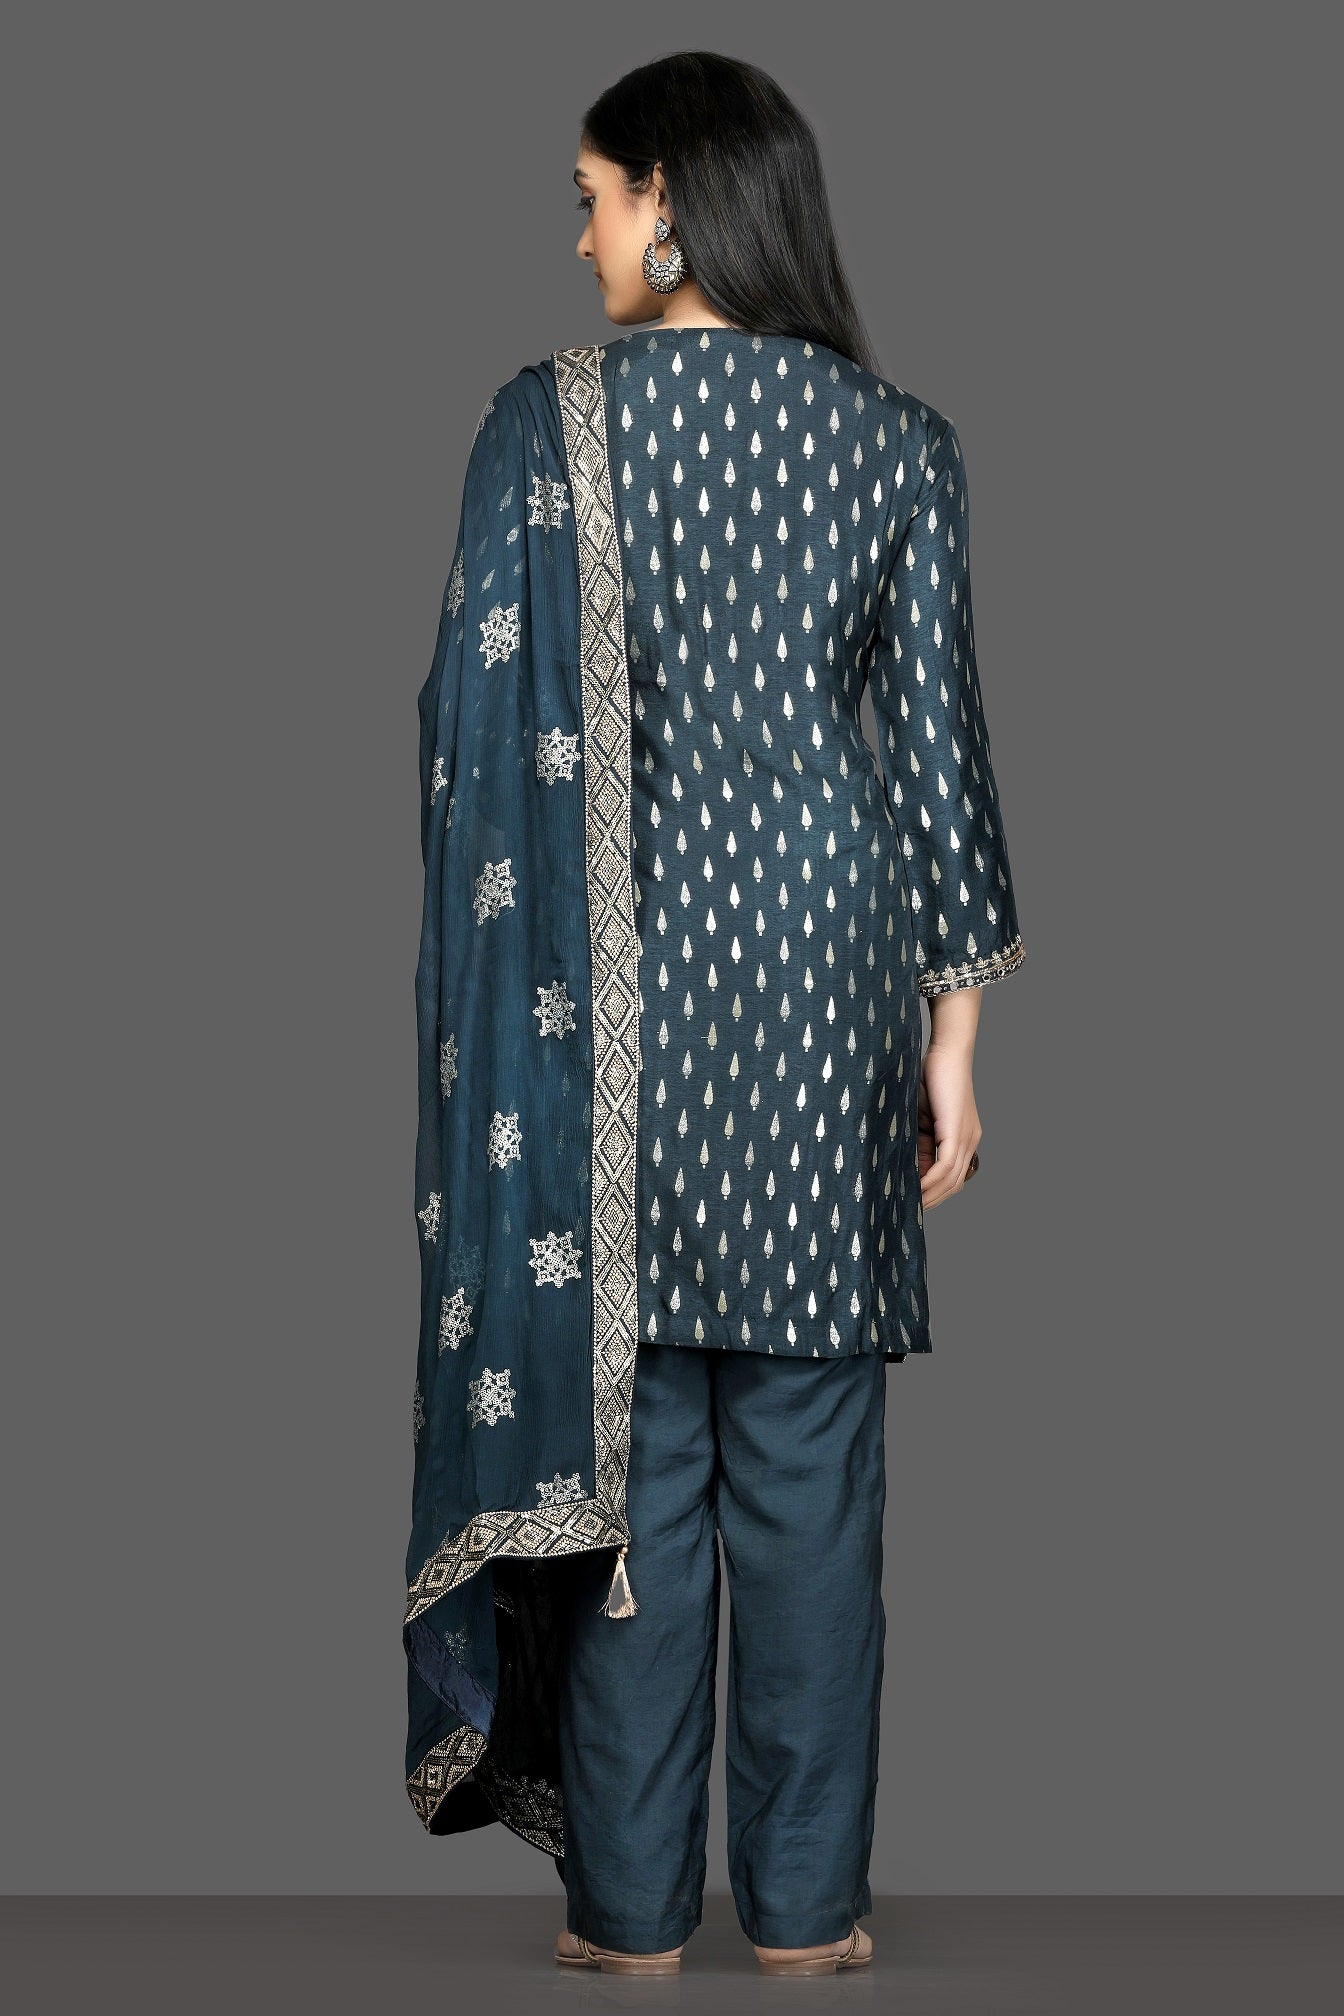 Shop stunning blue embroidered pant suit online in USA with embroidered dupatta. Dazzle on weddings and special occasions with exquisite Indian designer dresses, sharara suits, Anarkali suits, bridal lehegas from Pure Elegance Indian fashion store in USA.-back